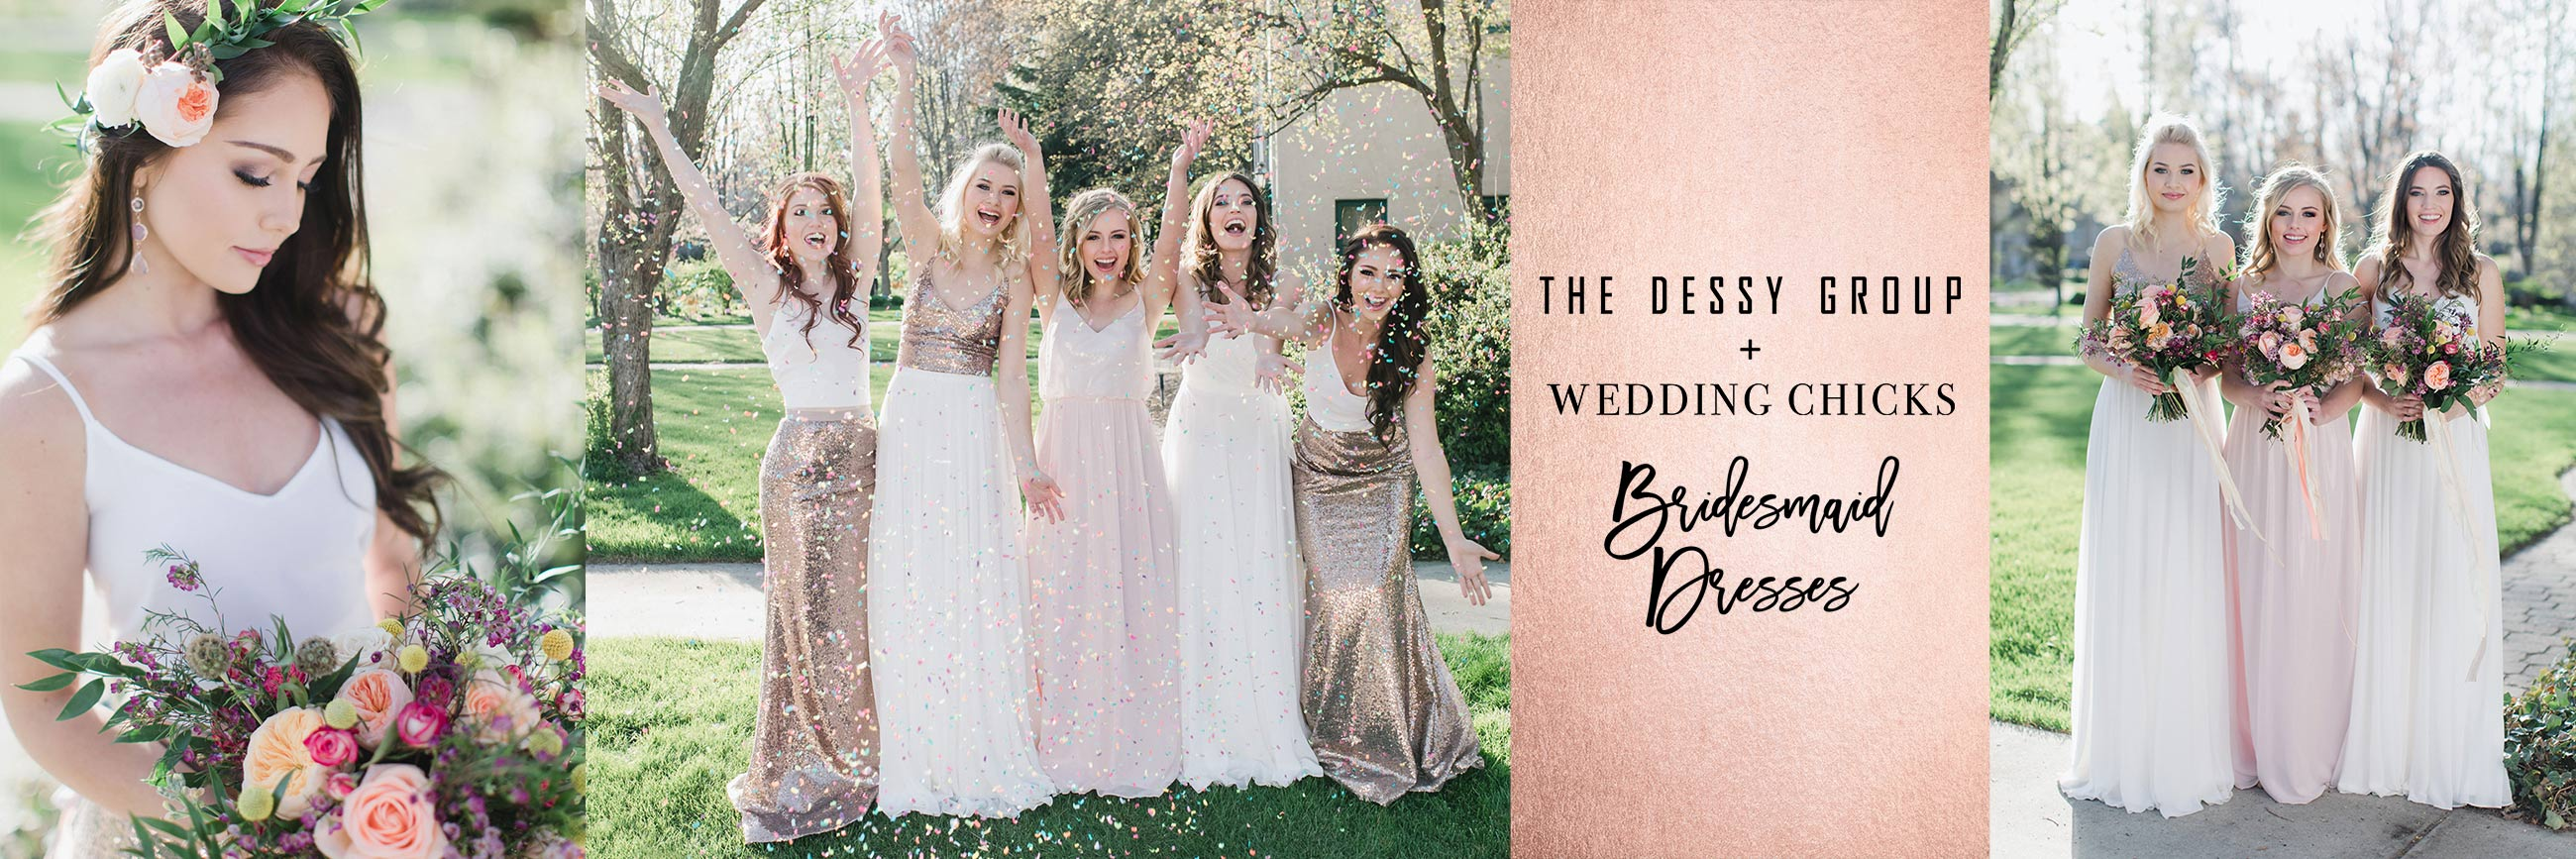 BRIDESMAIDS PARTY ONLINE REGISTRATION - BRIDESMAIDS REGISTRY - BRIDESMAIDS REGISTRATION ONLINE